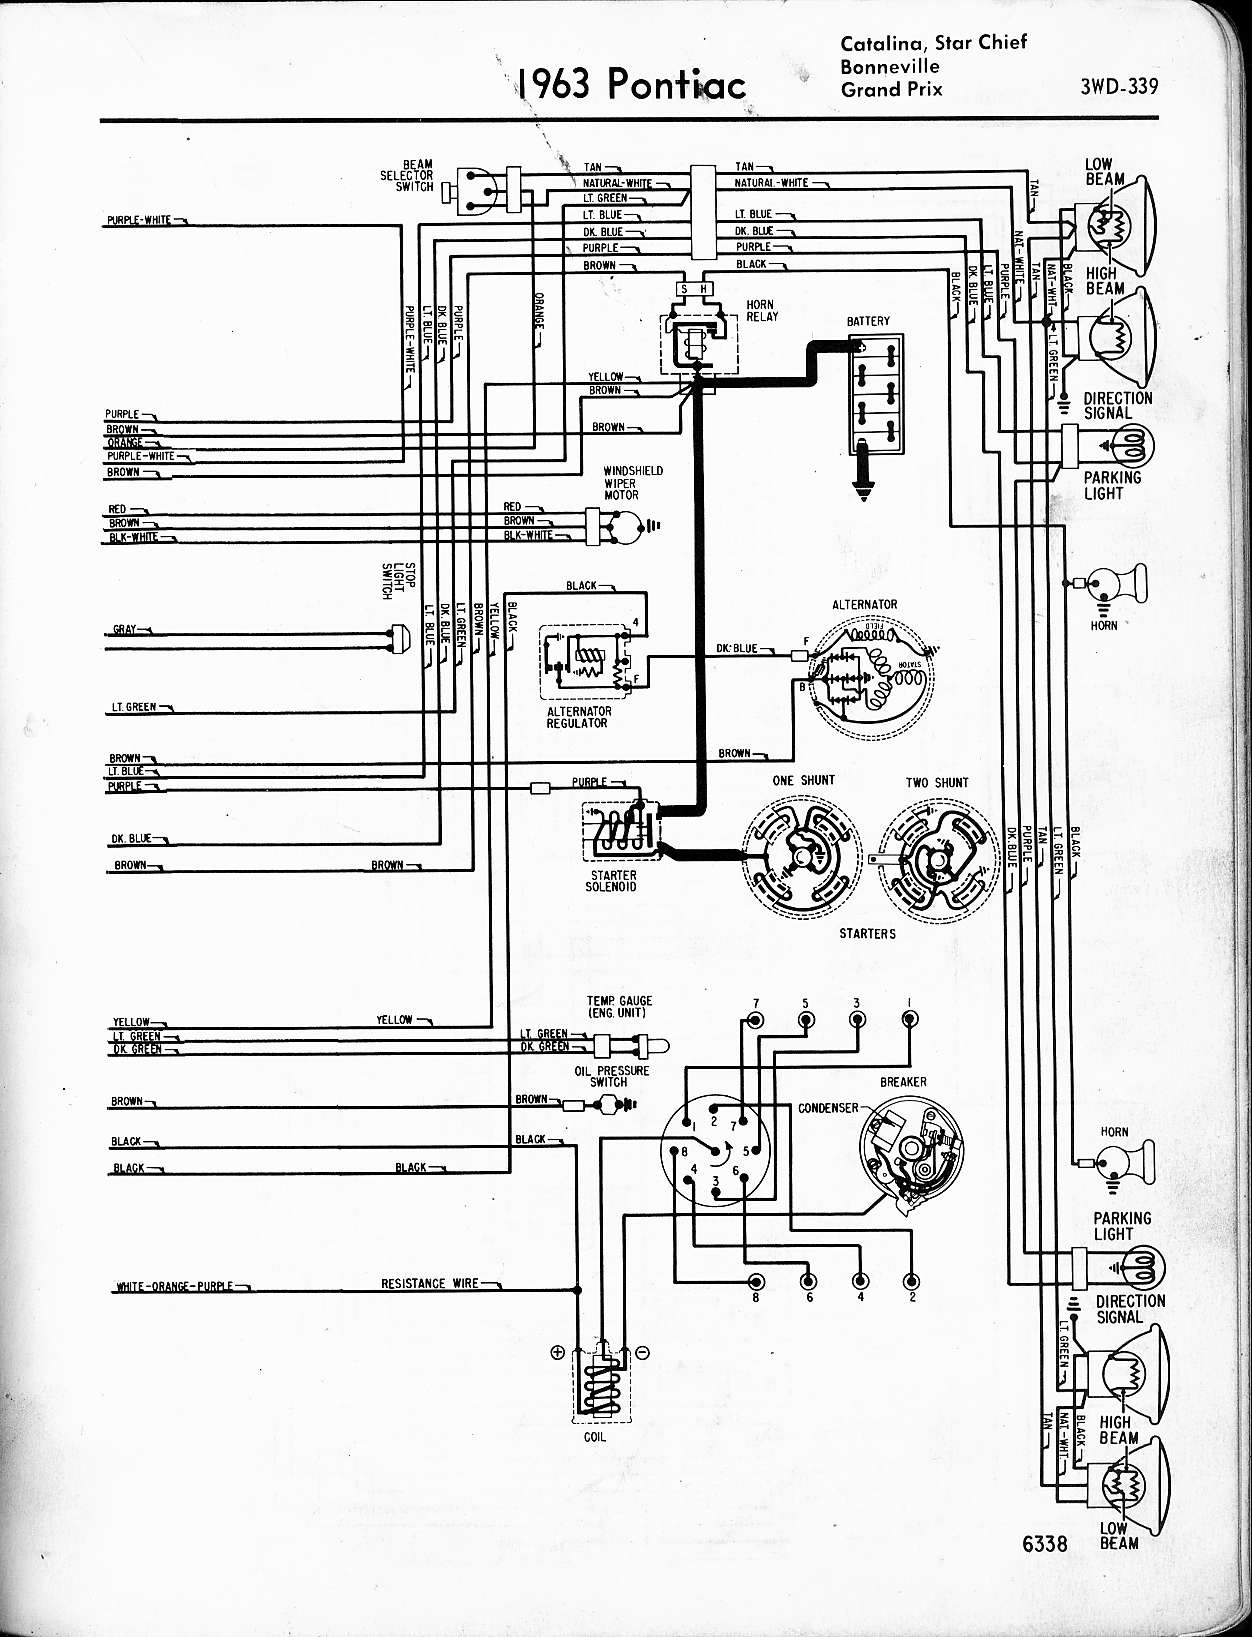 [DIAGRAM] 2003 Impala Fuel Gauge Wiring Diagram FULL